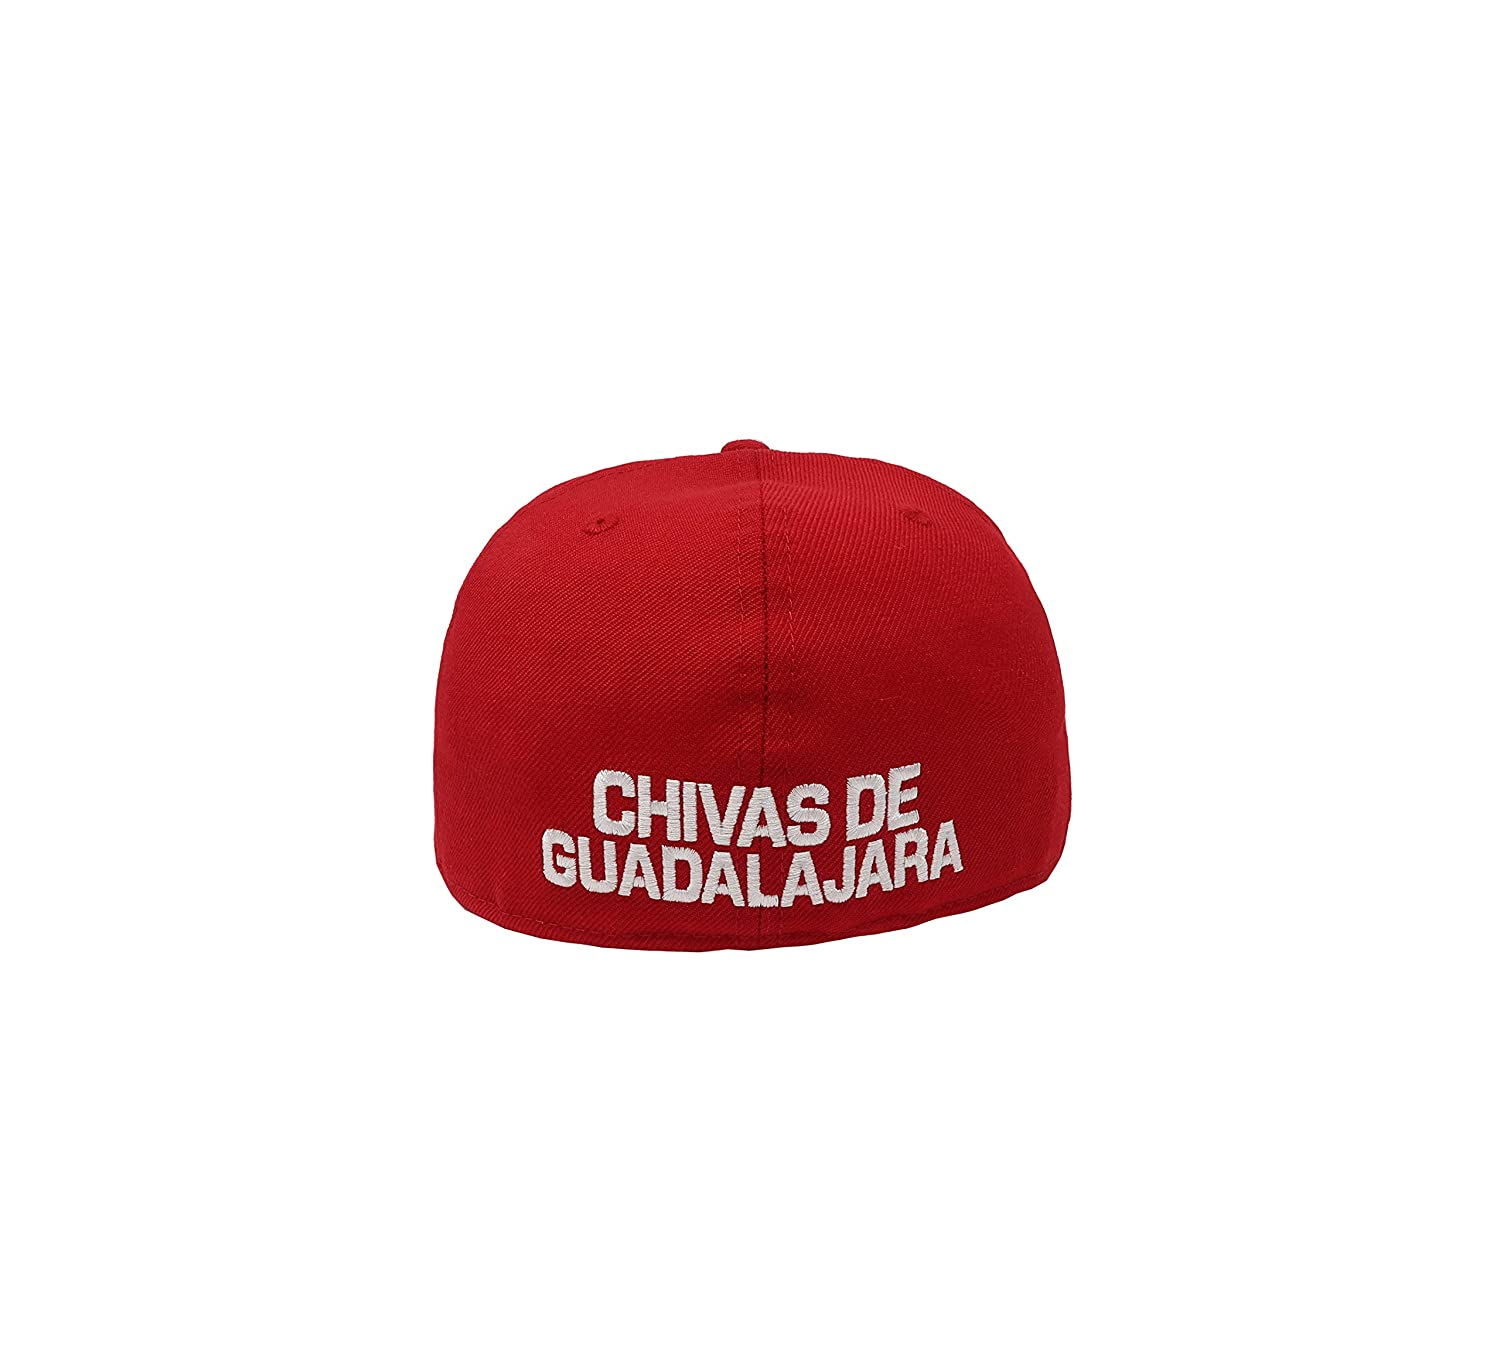 New Era 59Fifty Hat Chivas De Guadalajara Liga MX Soccer White/Red Fitted Cap at Amazon Mens Clothing store: